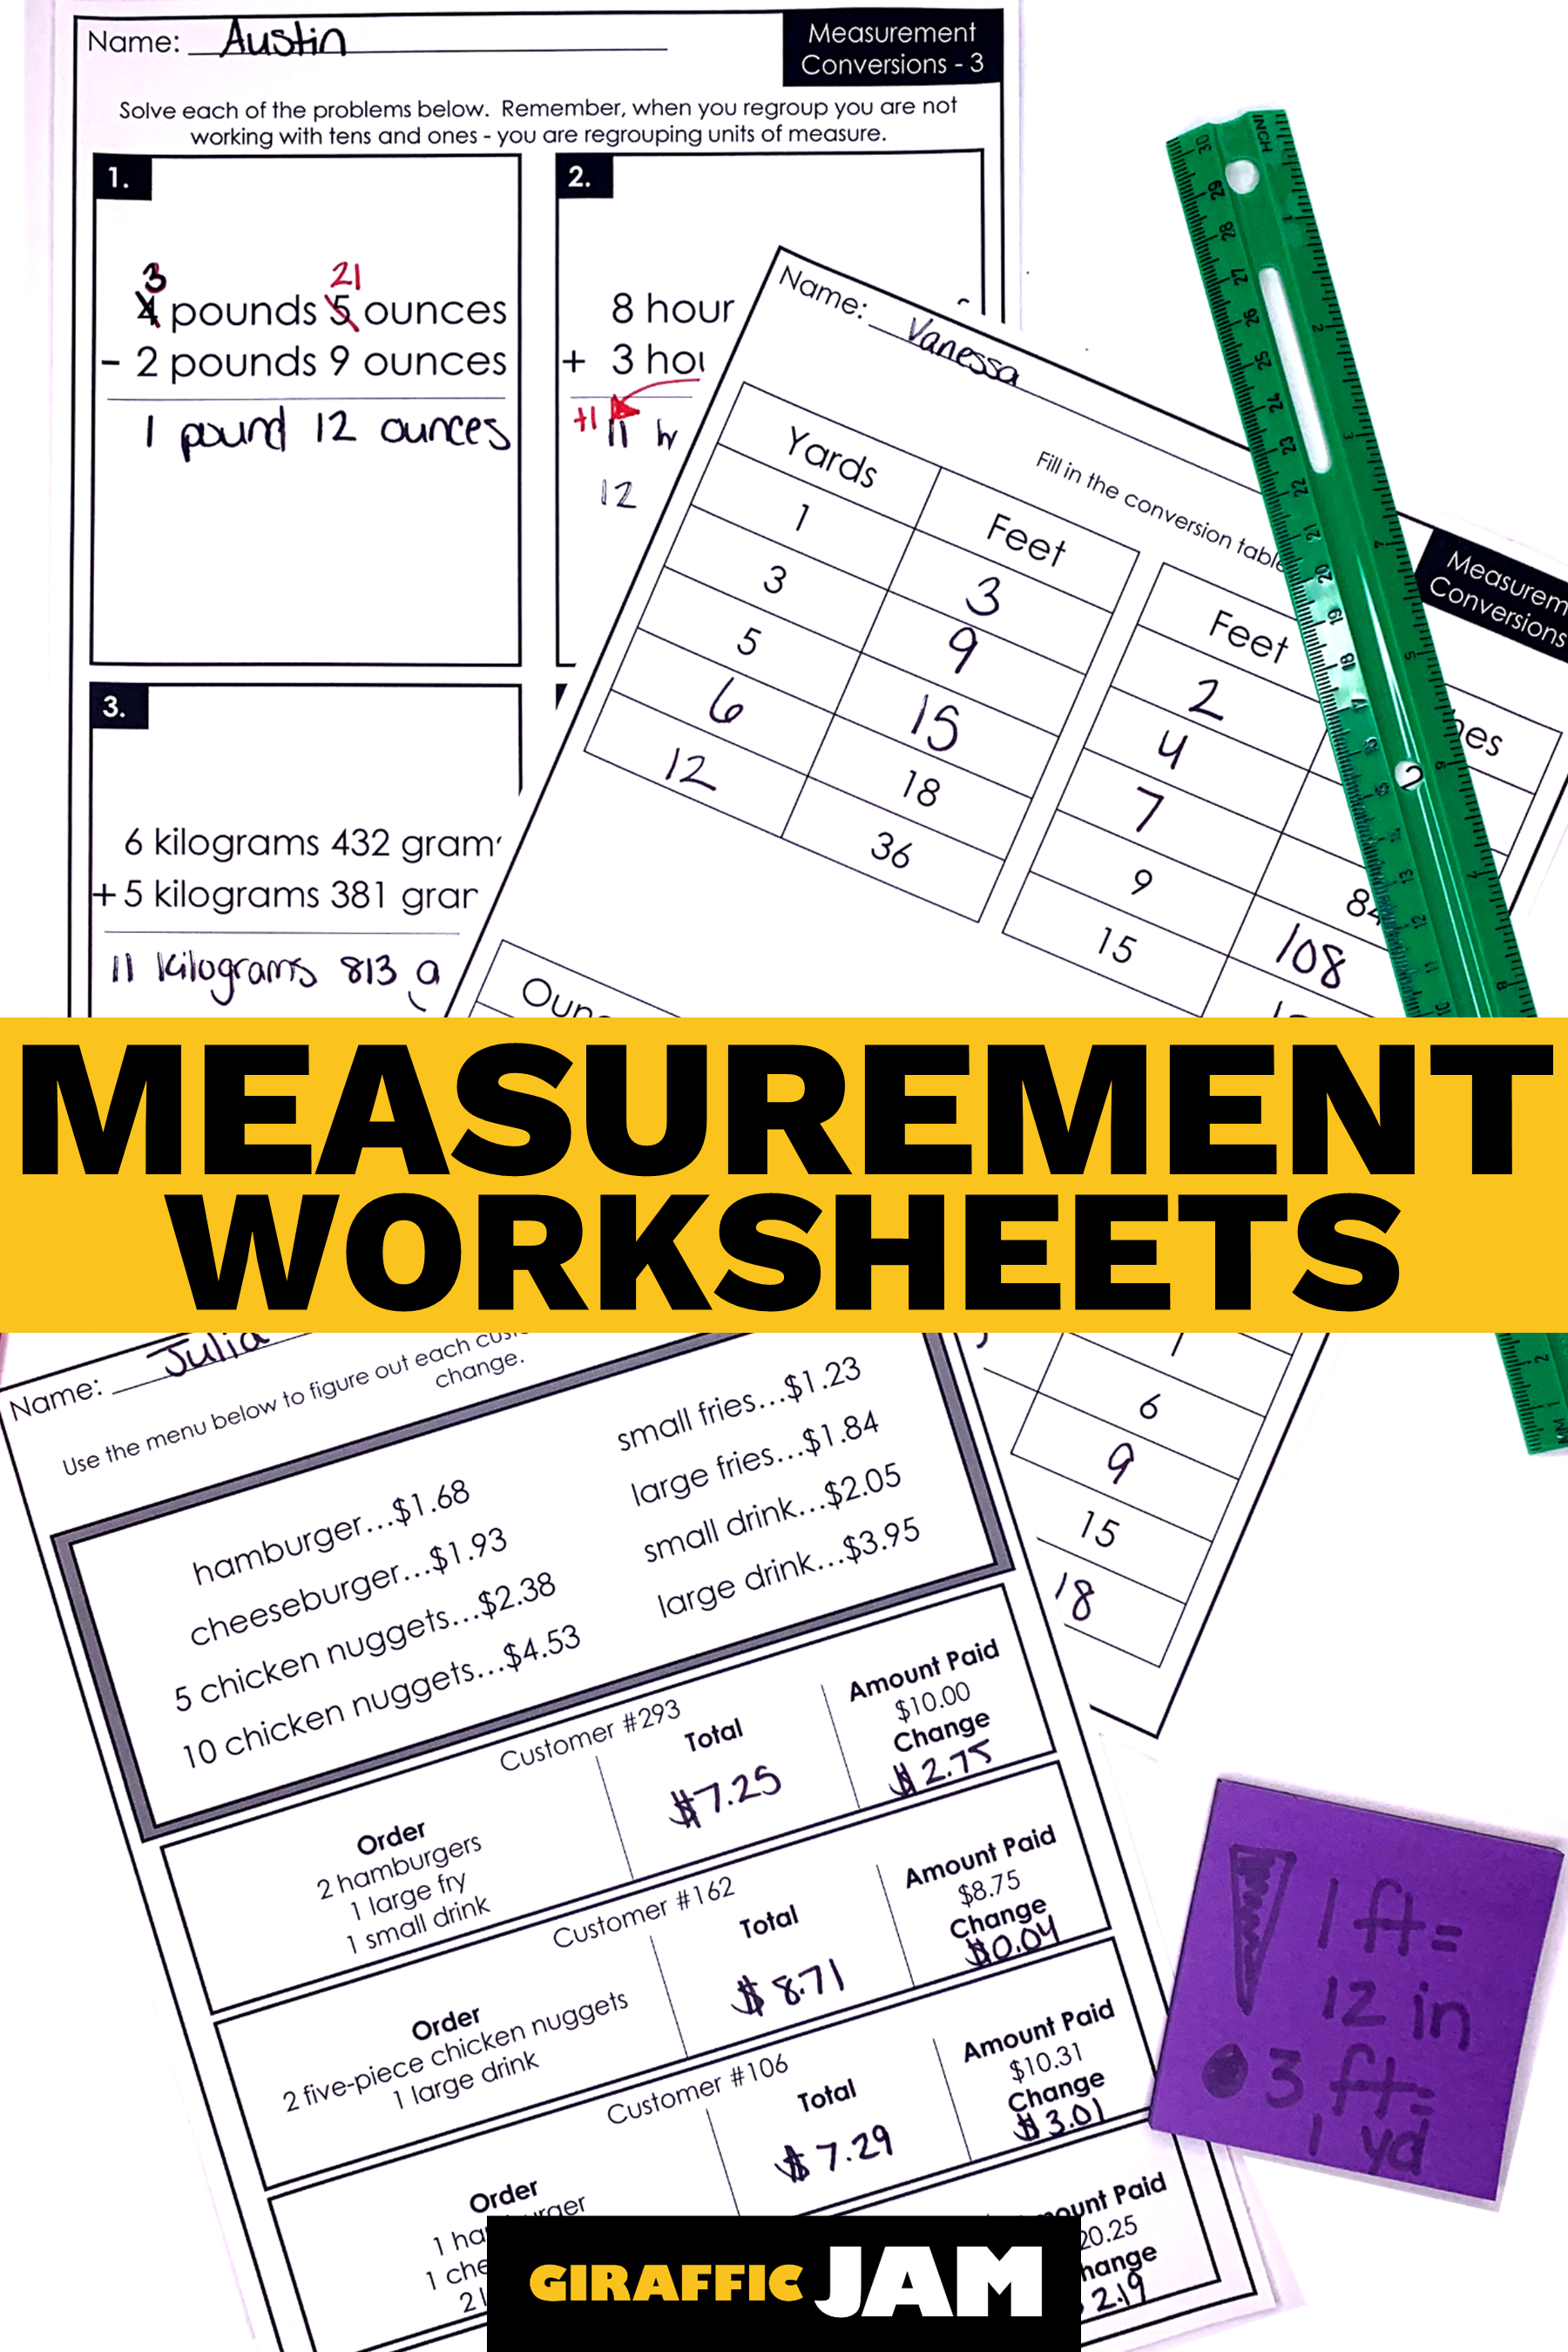 medium resolution of Measurement Worksheets   Measurement Homework   Measurement and Data   Measurement  worksheets